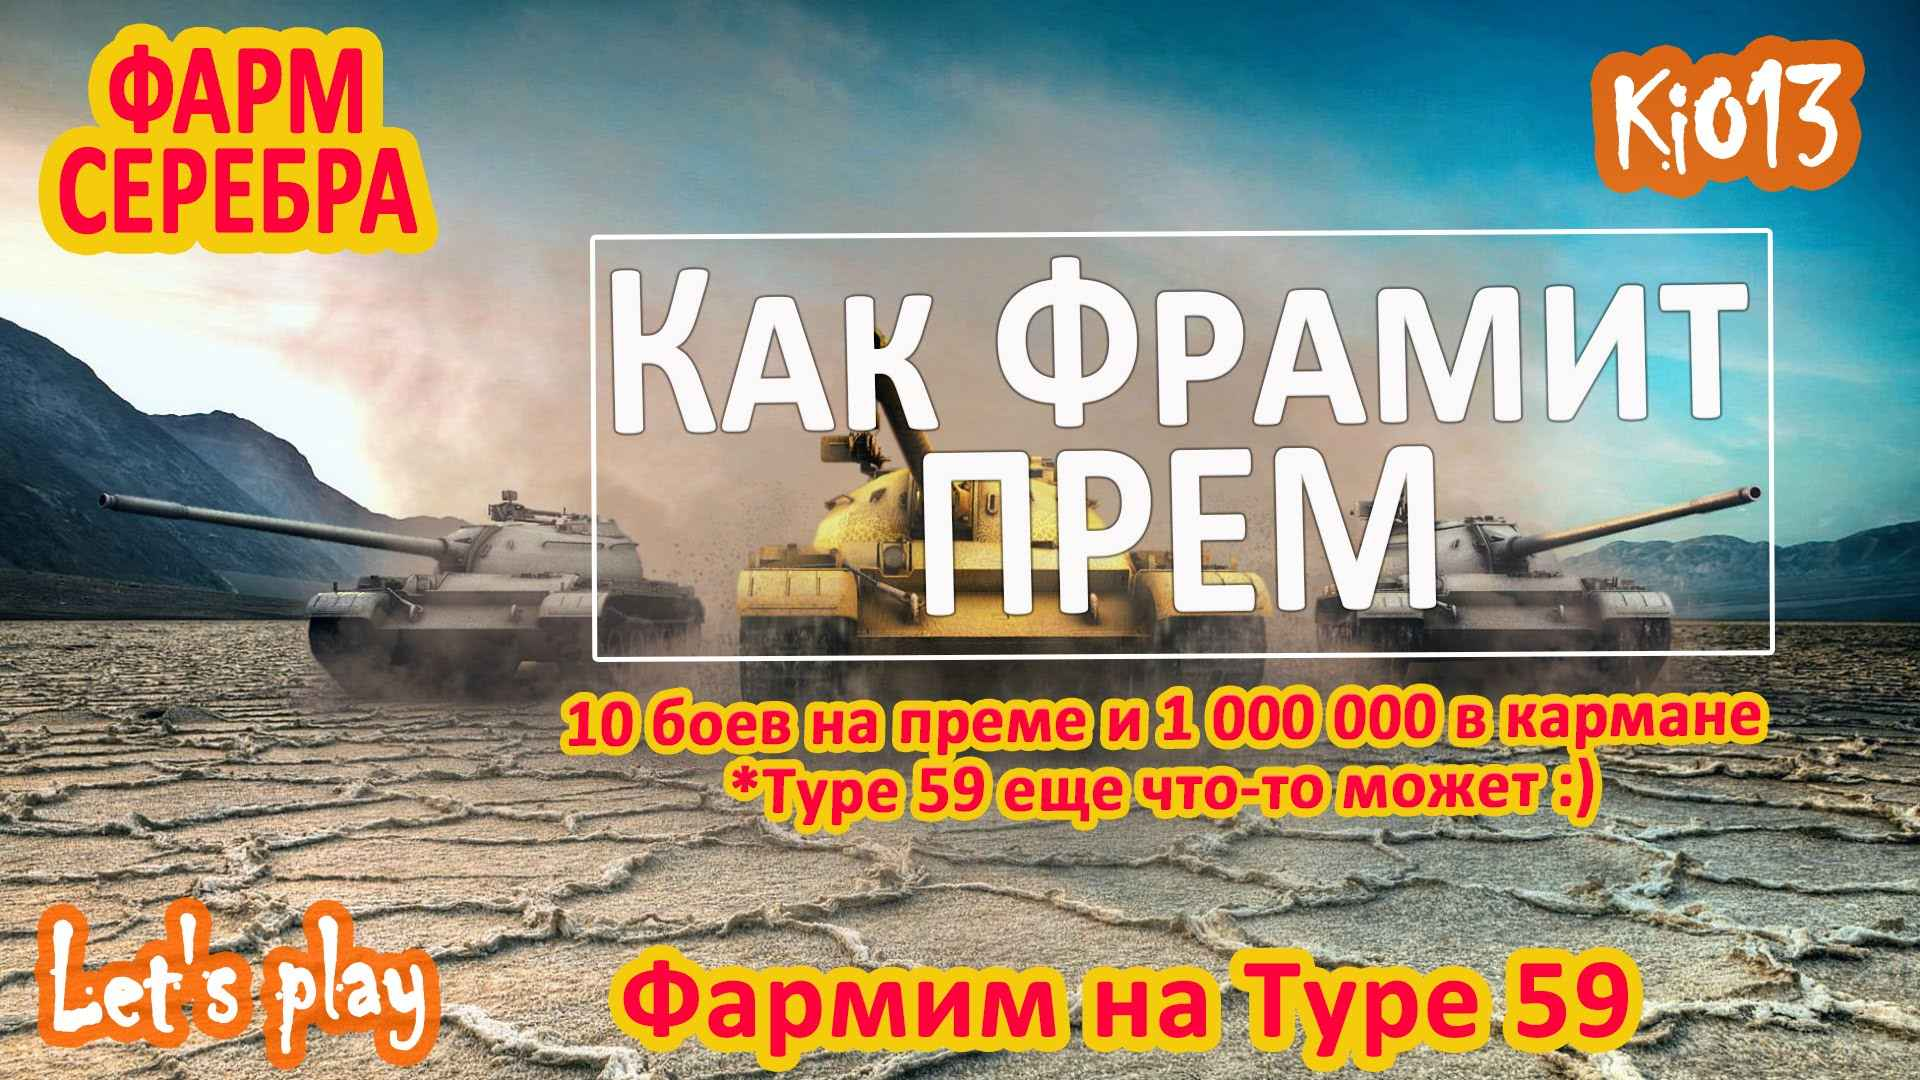 Type 59 - Как фармит прем - Фарм на Тип 59  World of Tanks #WoT